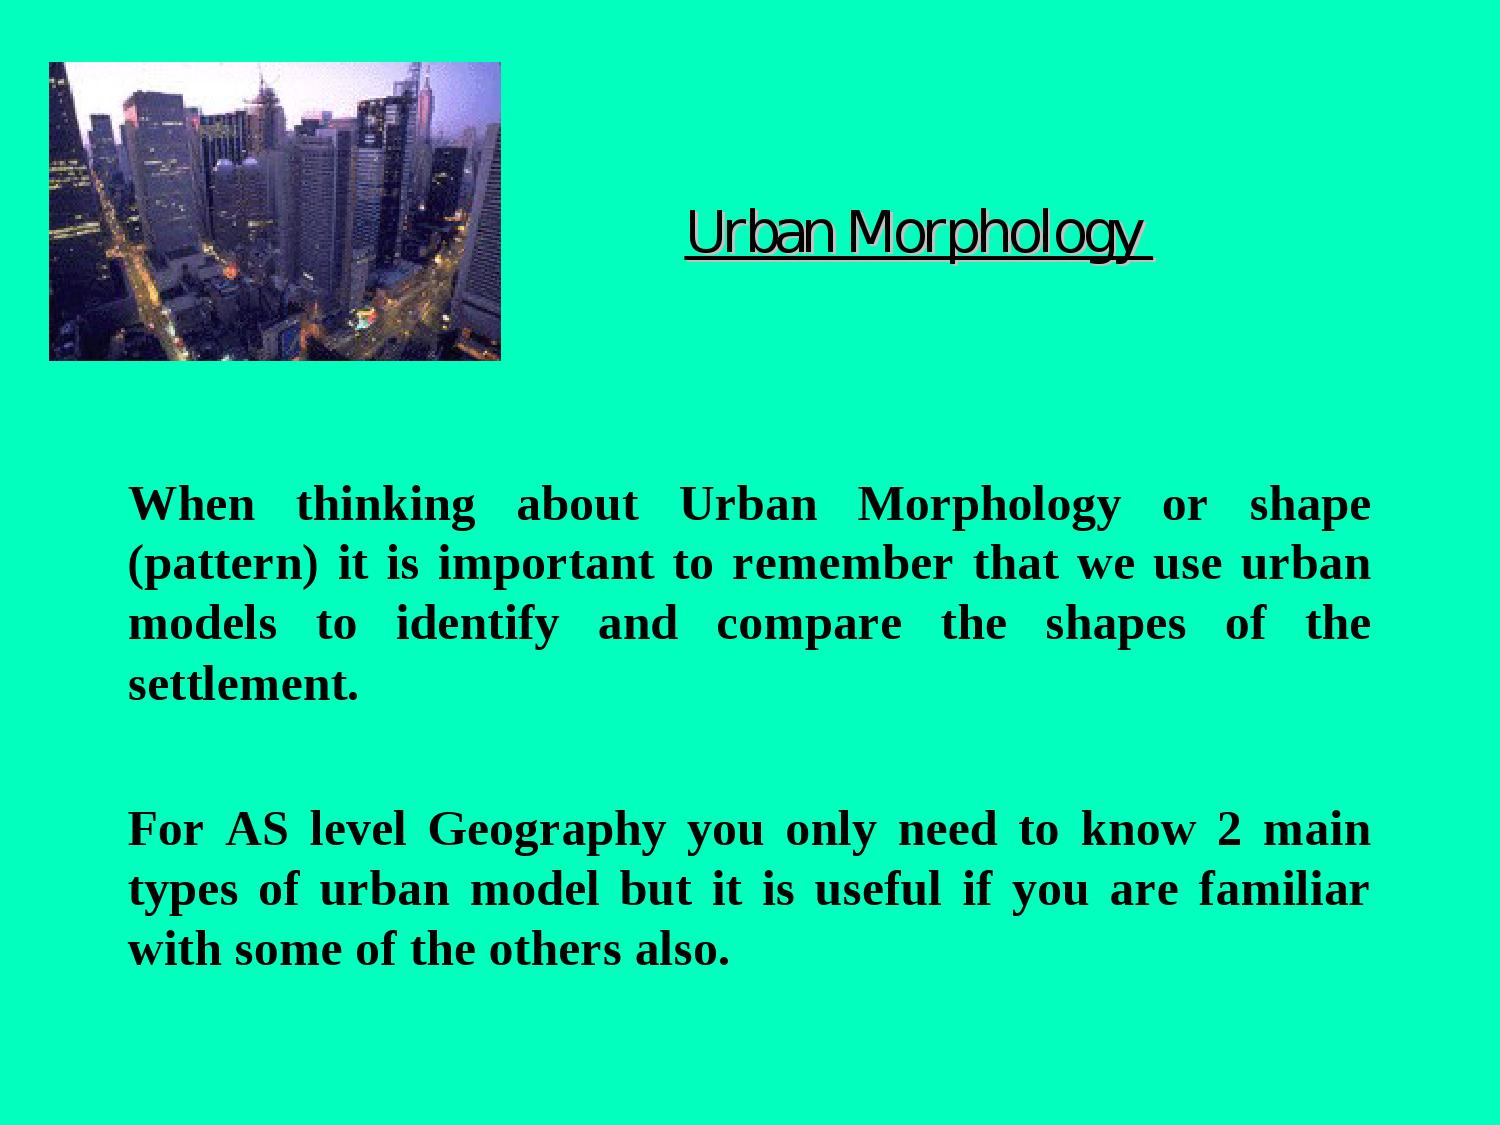 AS Level Urban Morphology and Model by Jahnoi Anderson - issuu